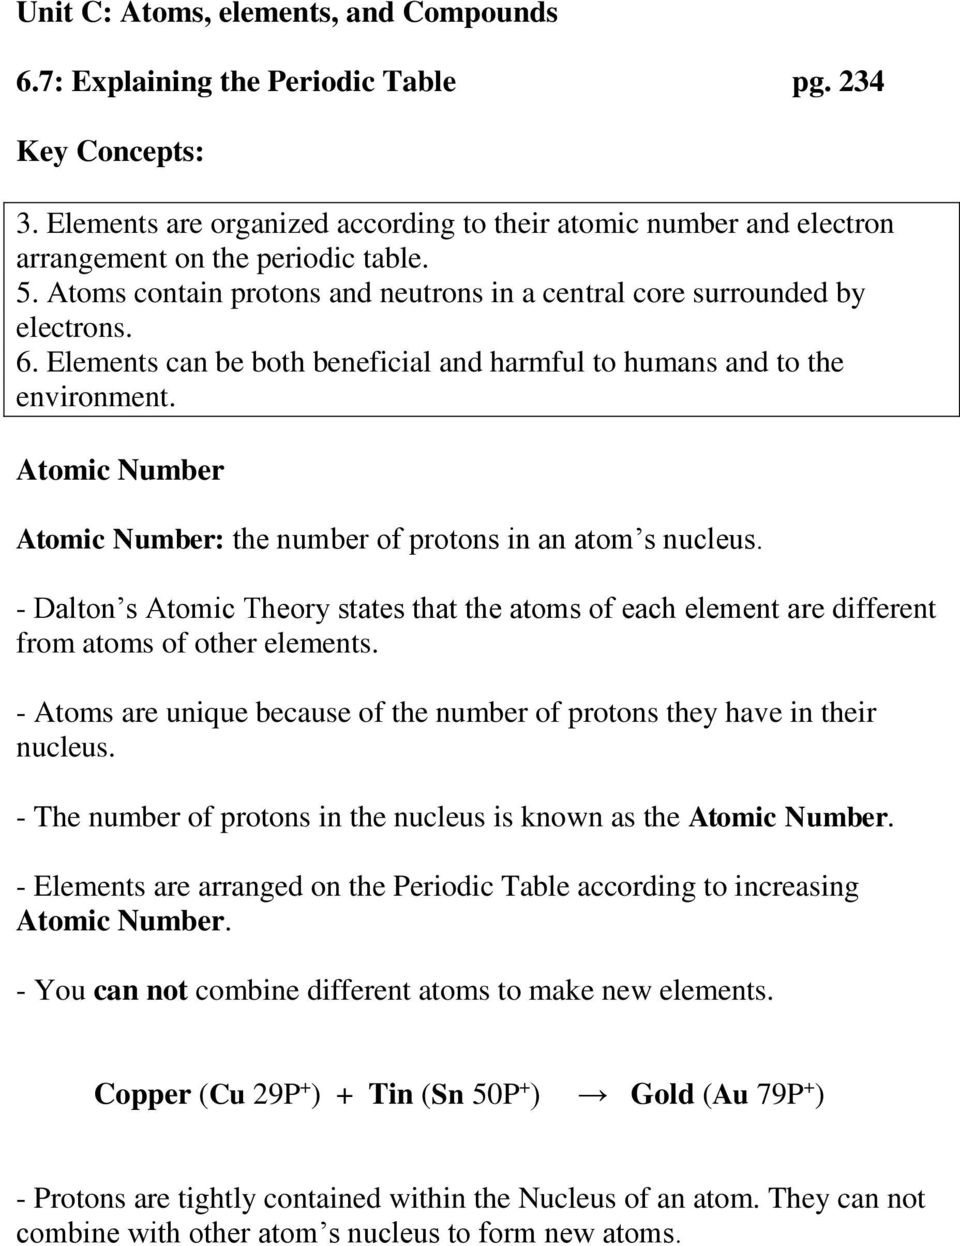 elements can be both beneficial and harmful to humans and to the environment atomic number